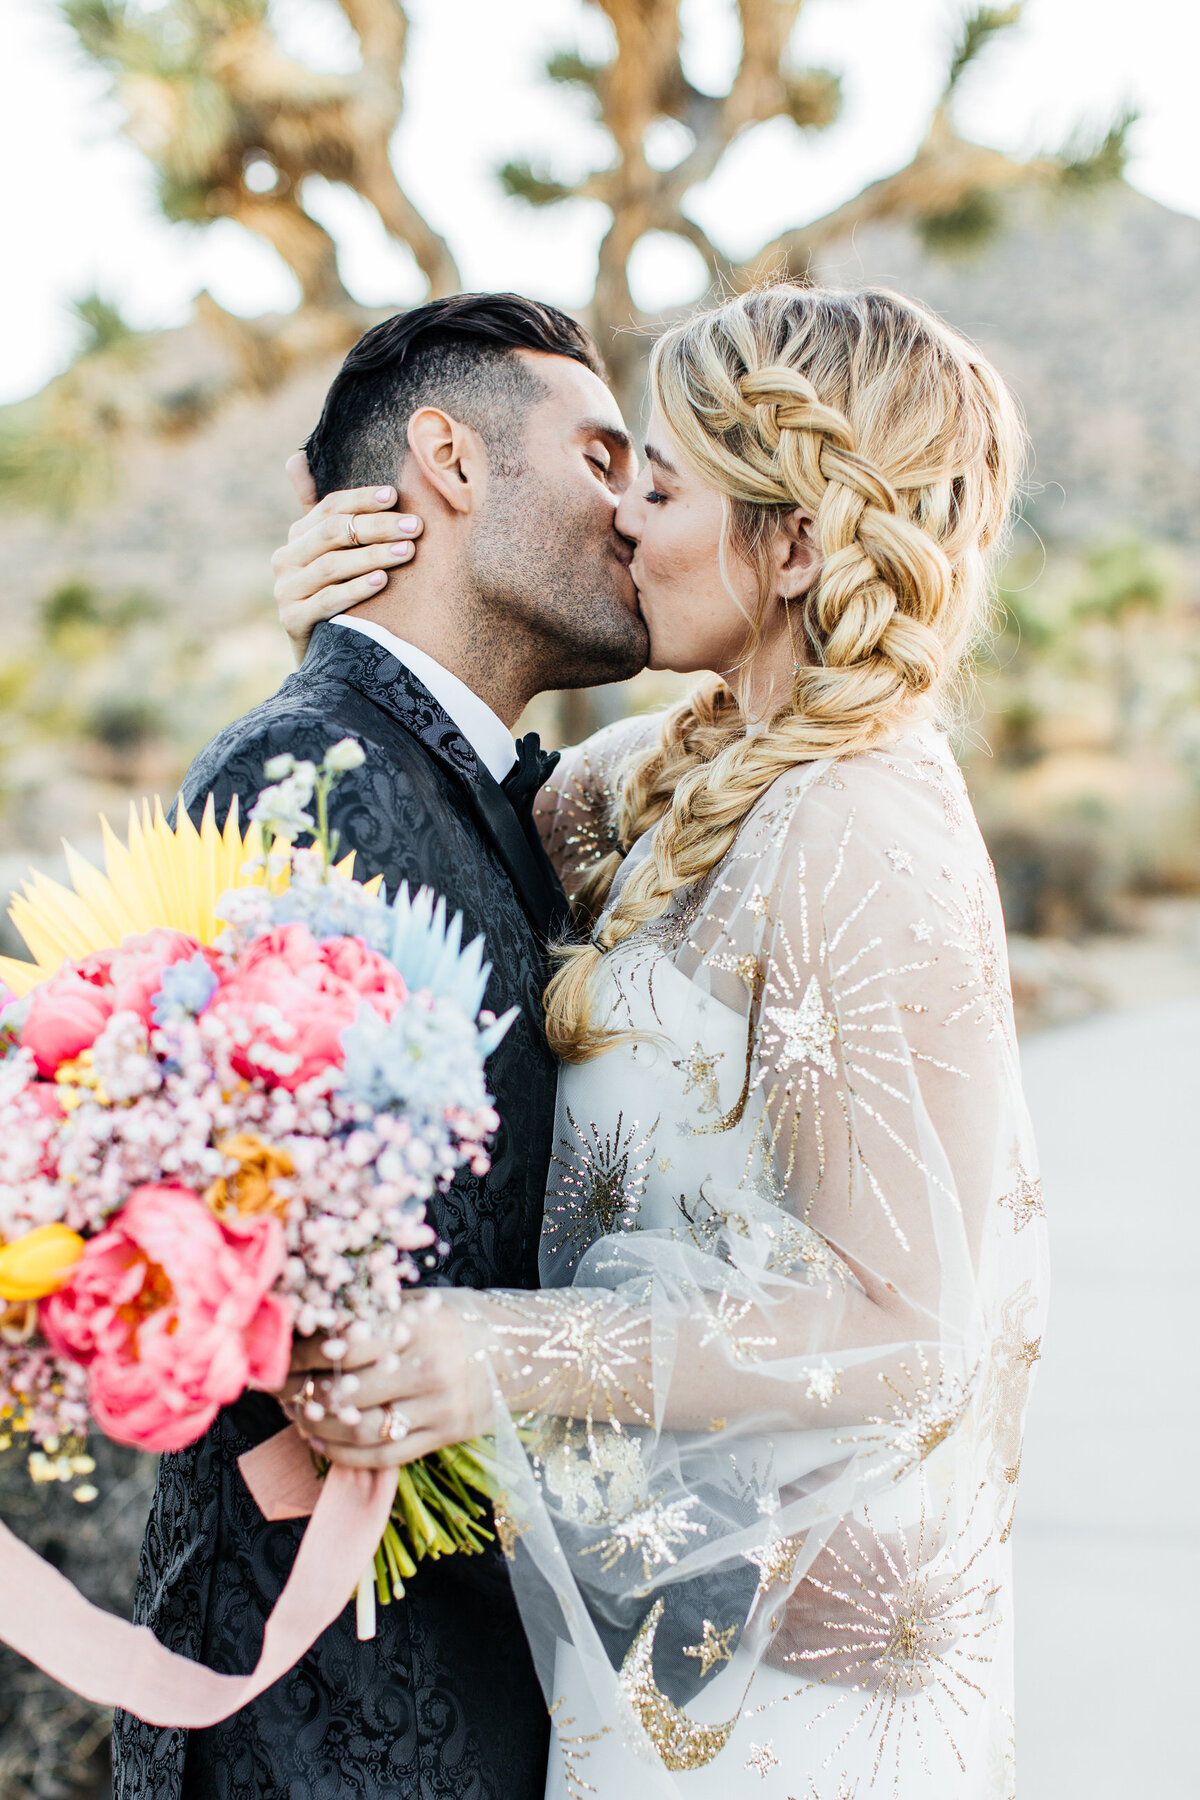 colorful-joshua-tree-elopement-inspiration-joshua-tree-wedding-photographer-palm-springs-wedding-photographer-erin-marton-photography-41